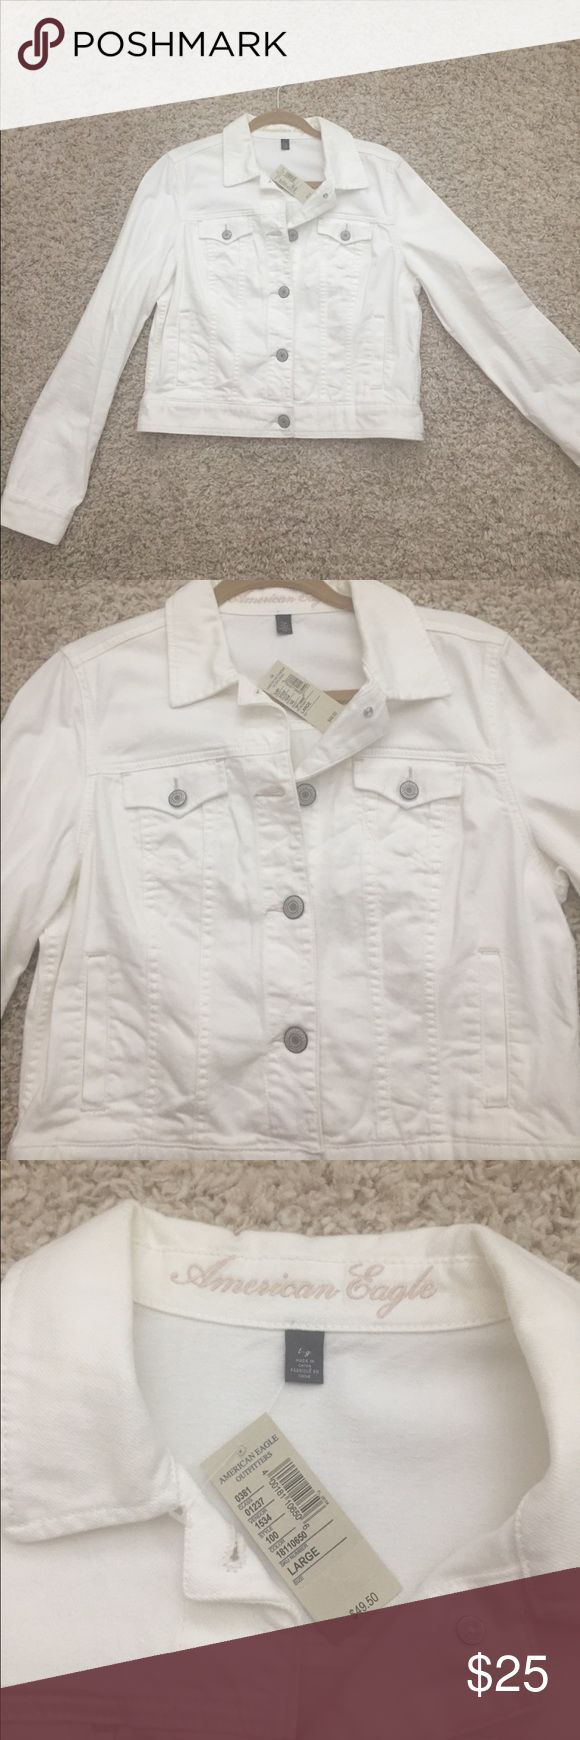 BRAND NEW w Tags American Eagle Jean Jacket White jean jacket that is brand new and has never been worn. It is in perfect condition and it is super cute to wear in the spring or summer! Please make an offer! American Eagle Outfitters Jackets & Coats Jean Jackets